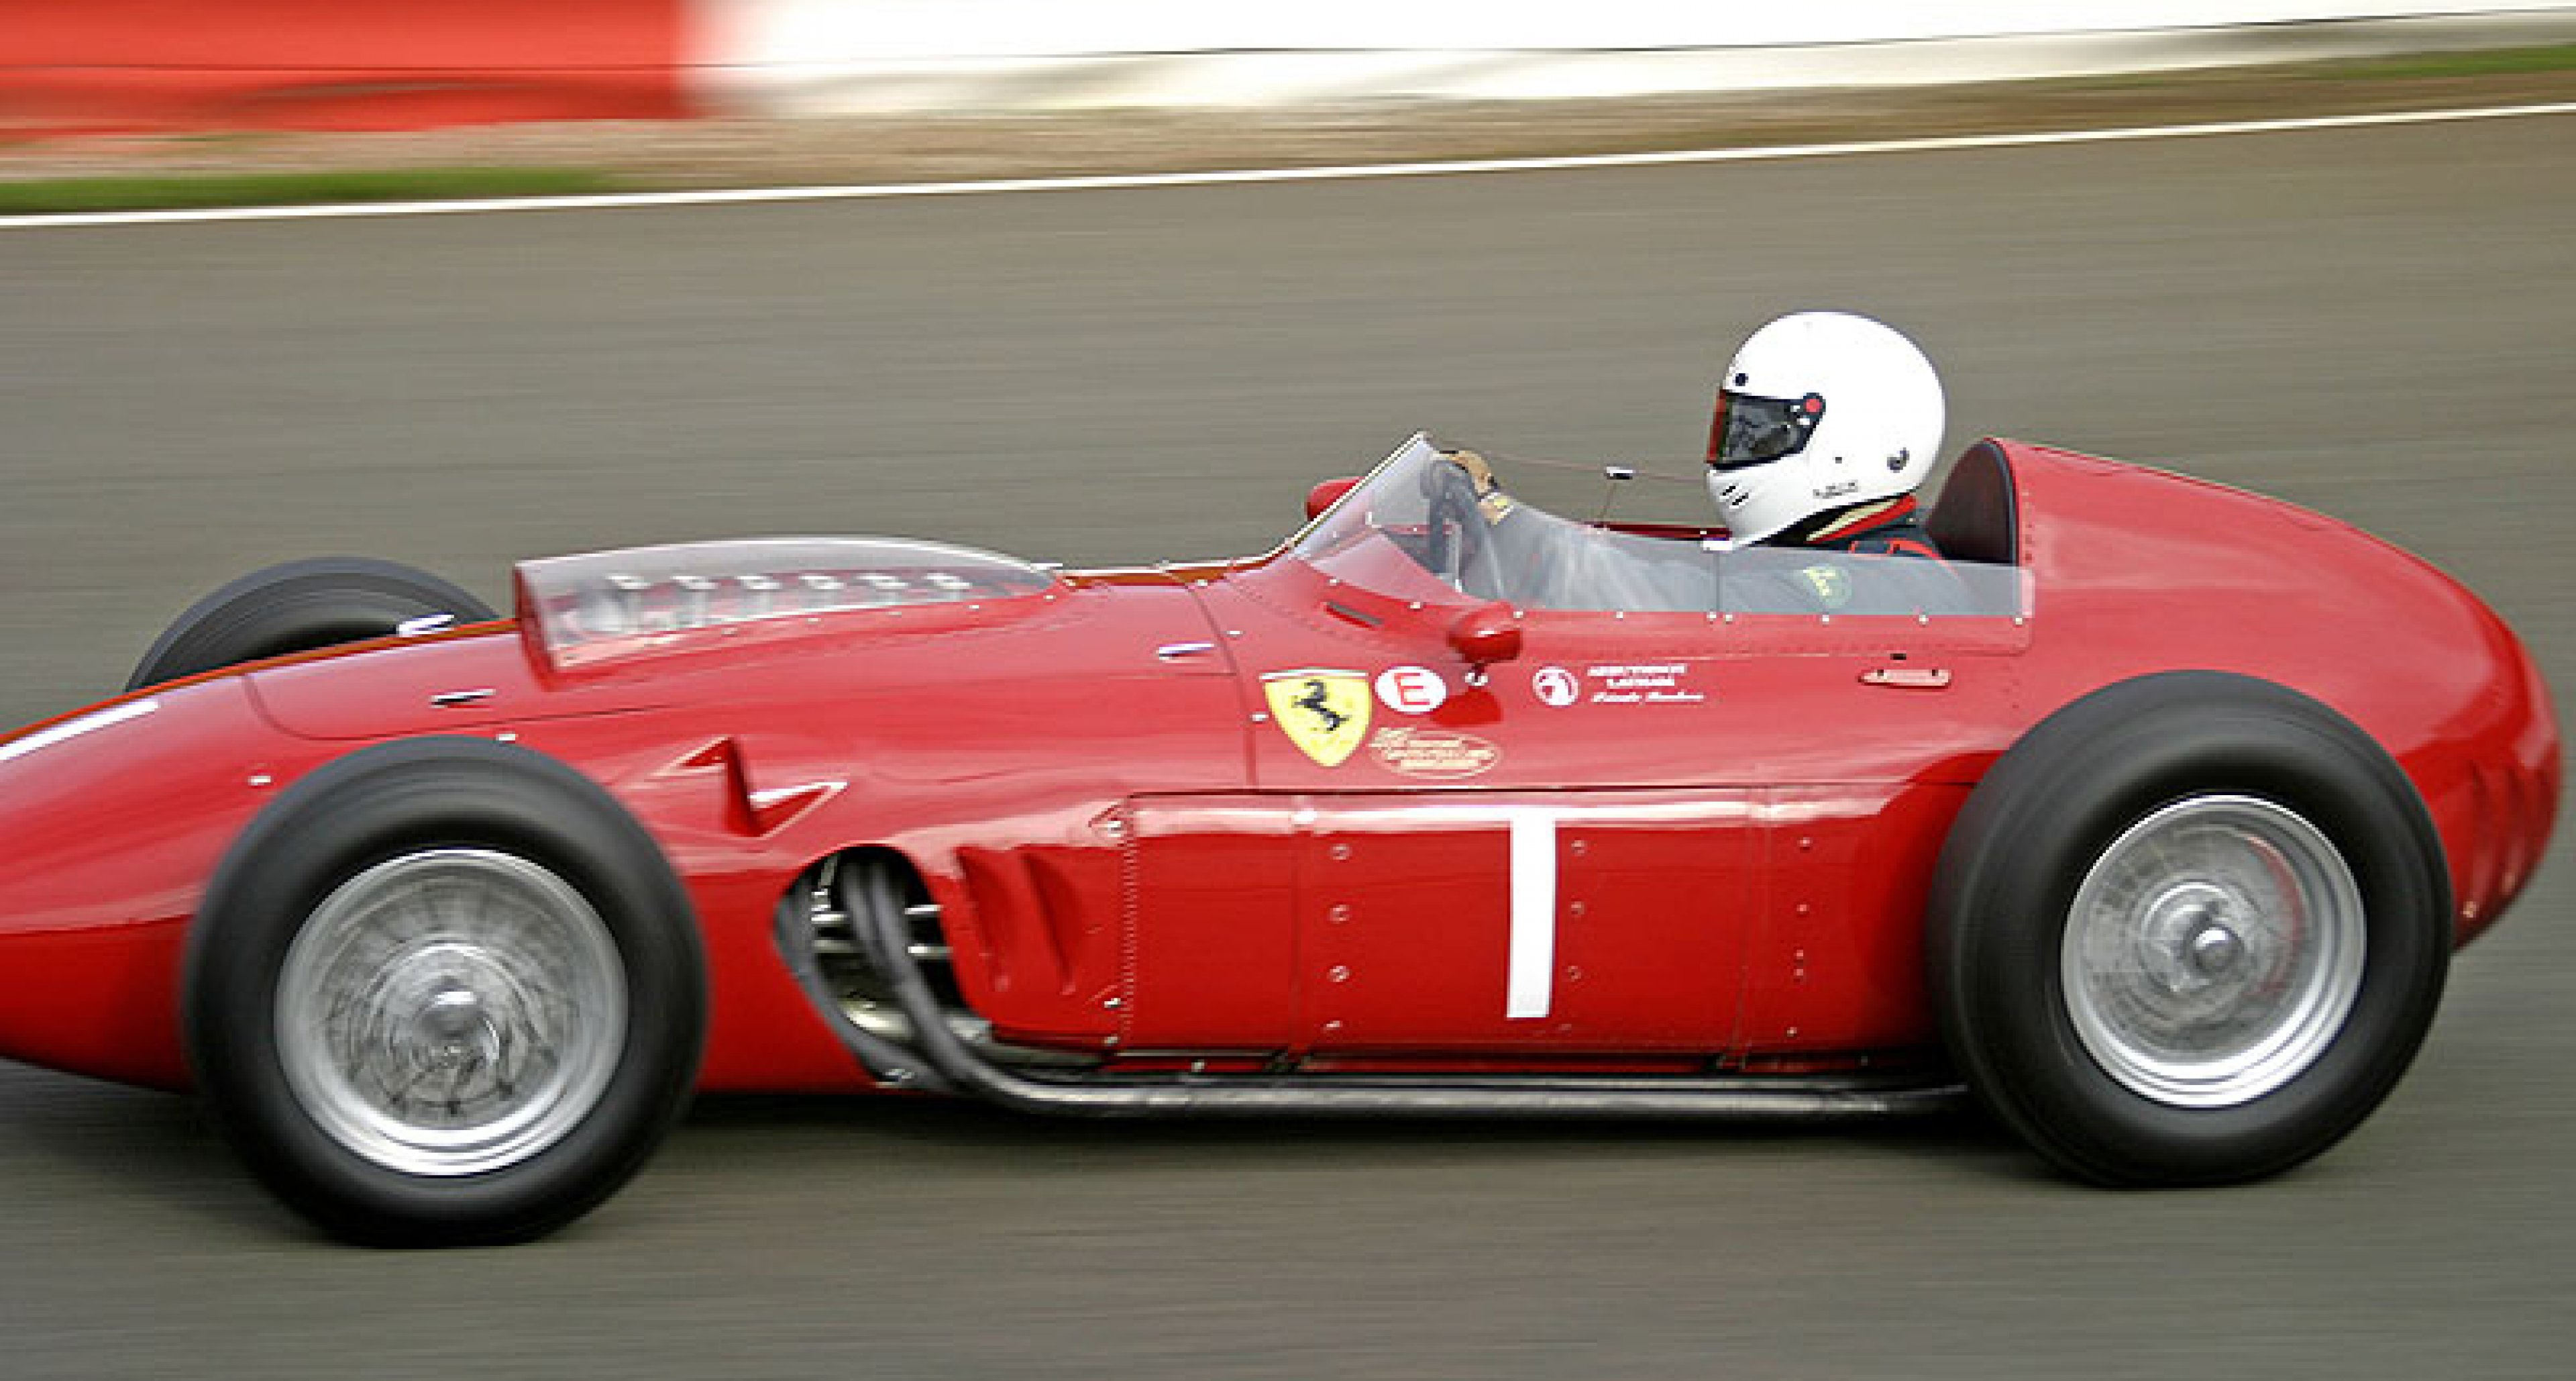 The Silverstone Classic - July 2007